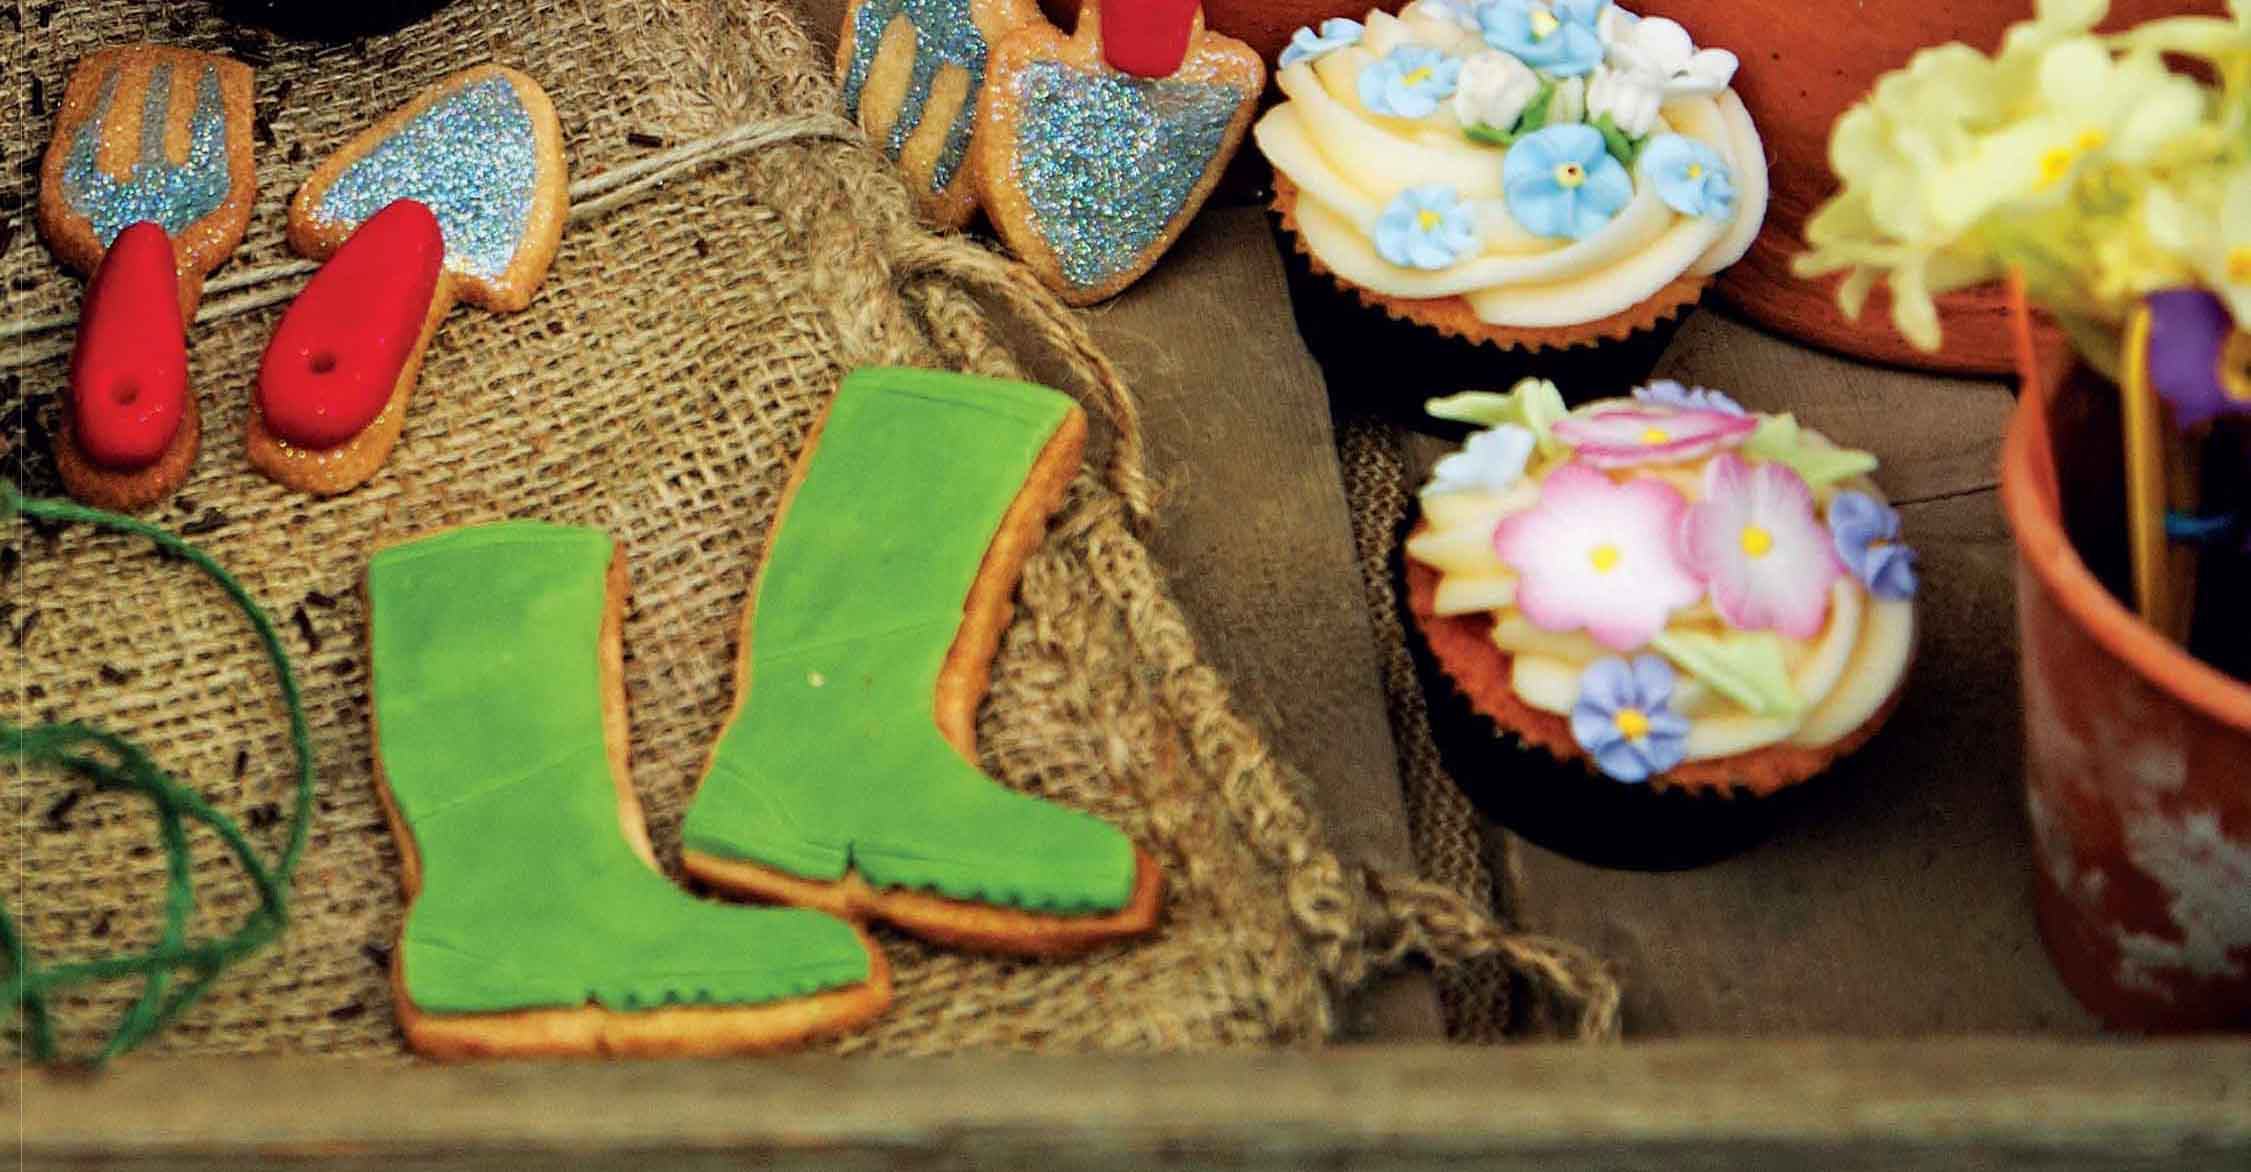 Wellies, fork and trowel biscuits